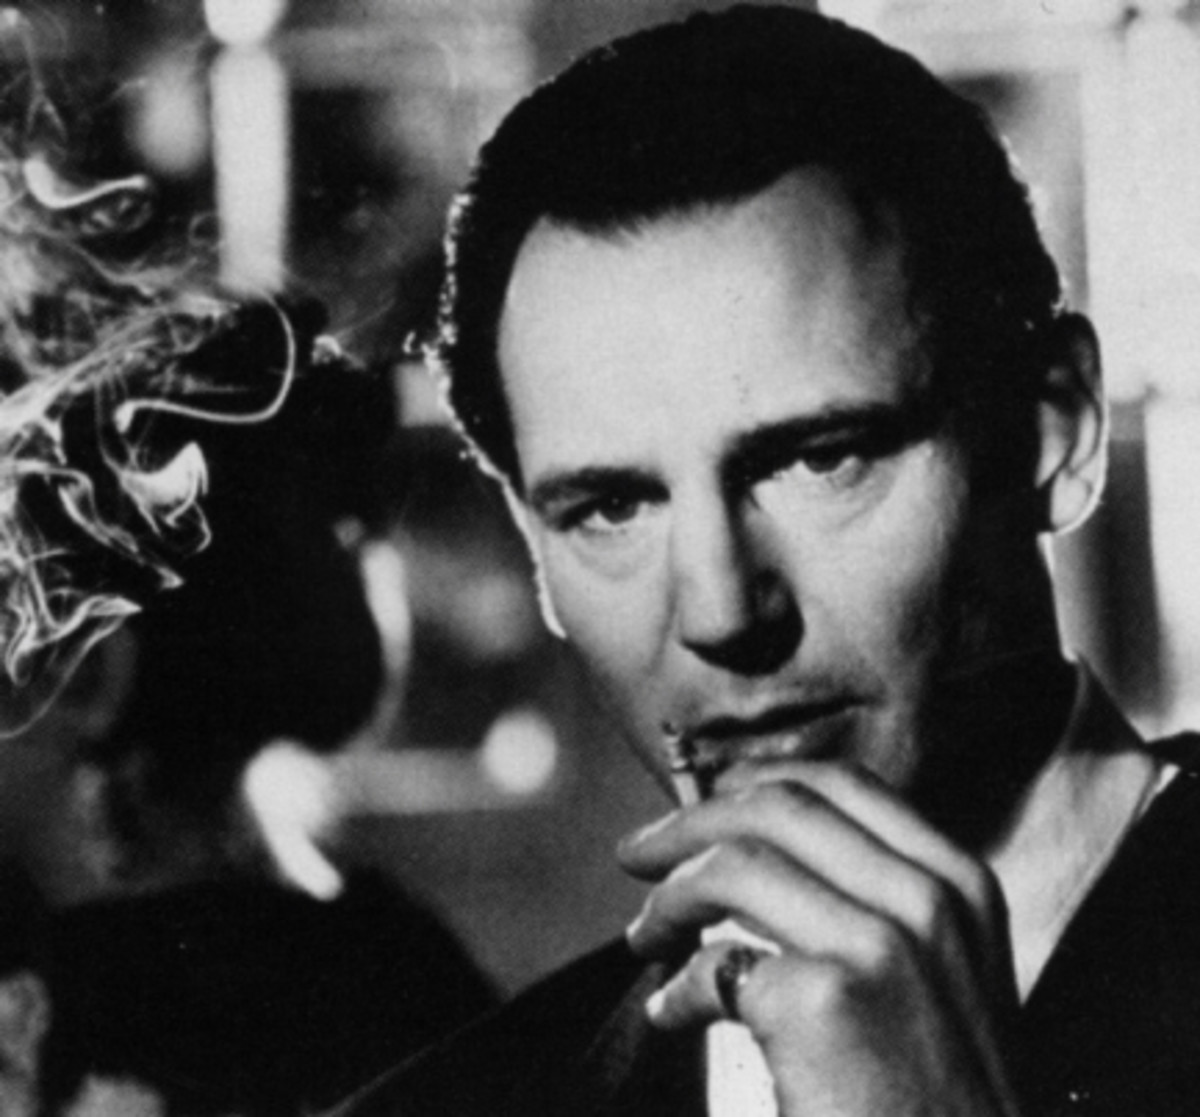 Liam Neeson in Schindlers List - Best and Famous Irish Actor